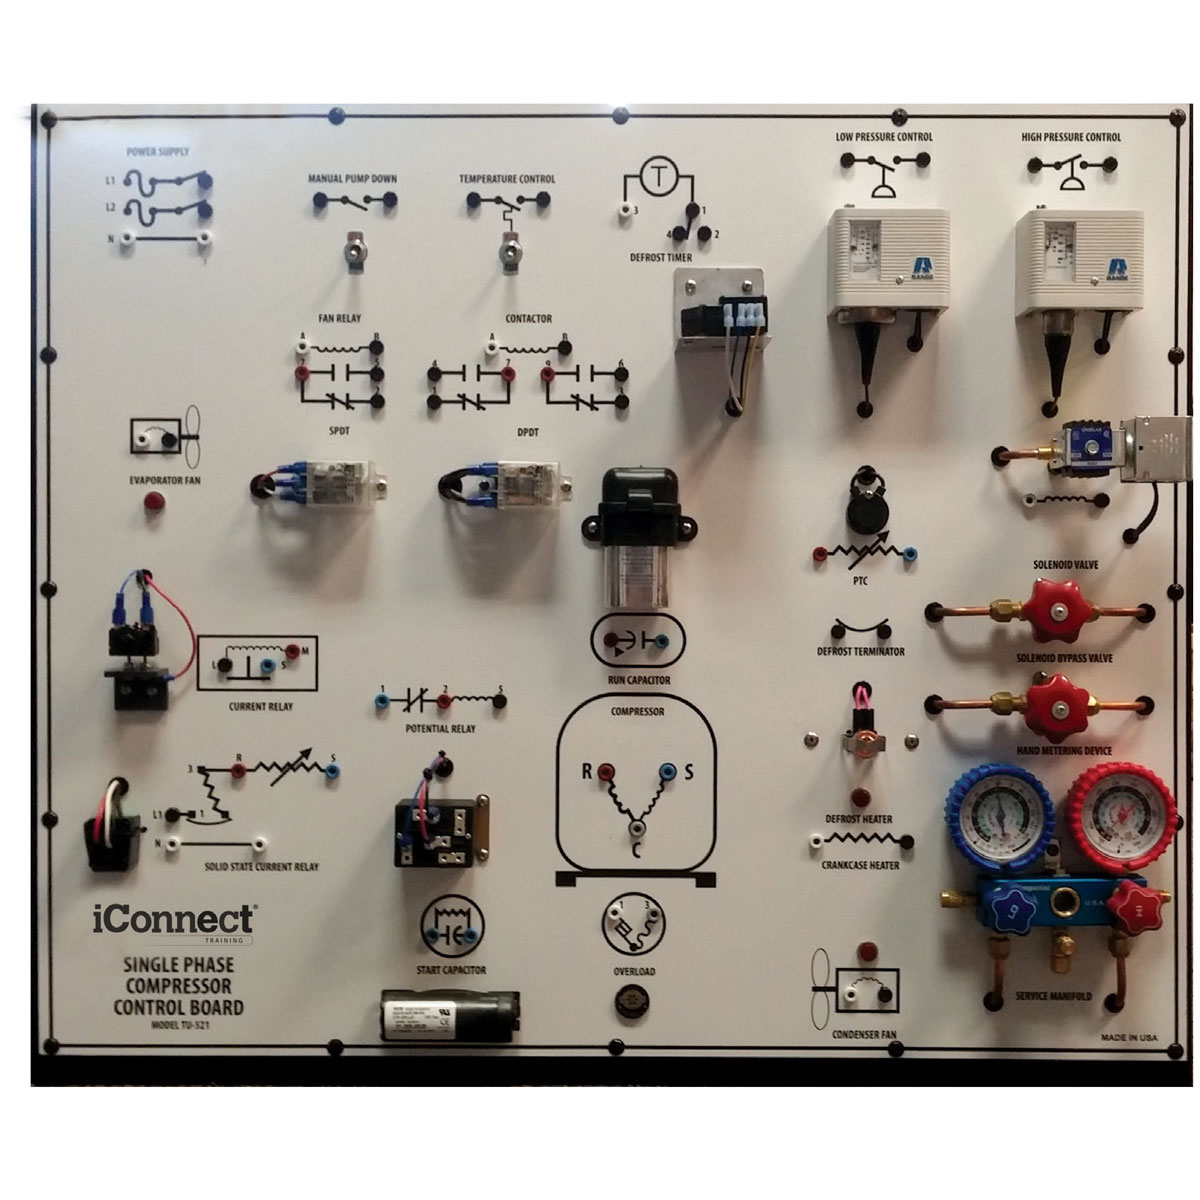 TU-521 Control Board, Single Phase Compressor Trainer